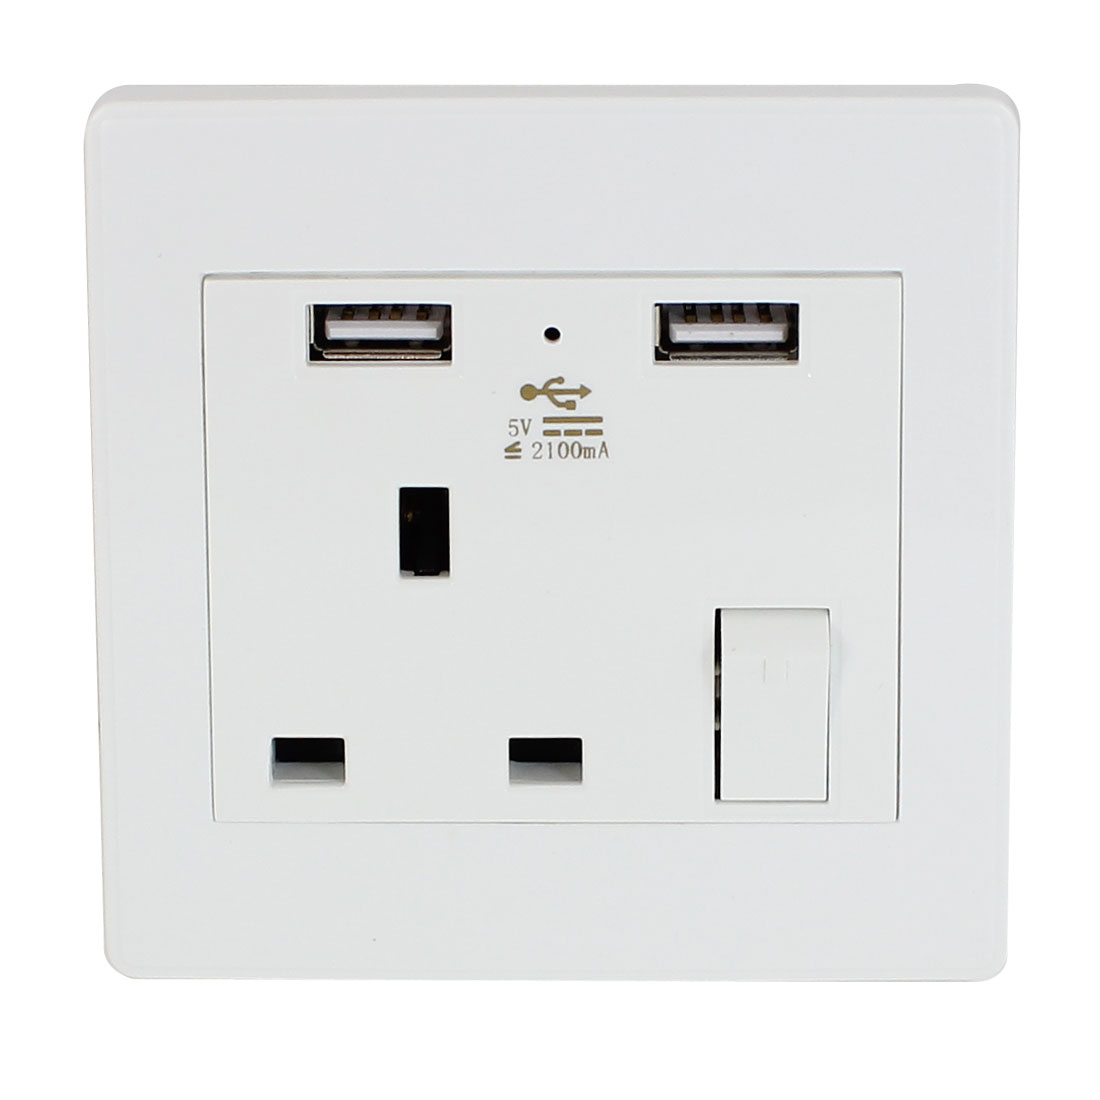 AC 110V-250V UK Socket 2 USB Port Charging DC 5V 2100mA Switch Mains Power Wall Outlet